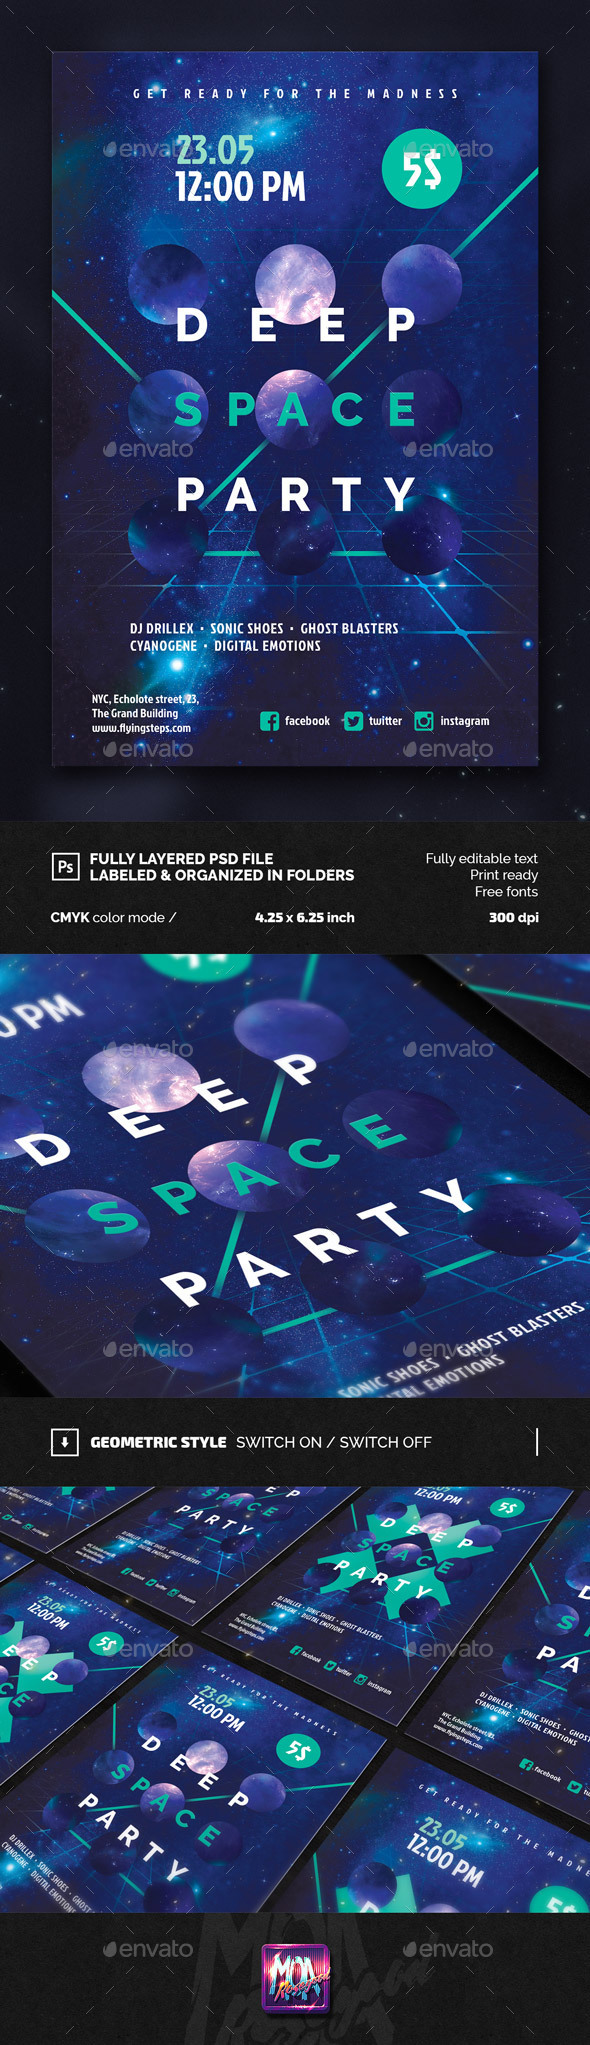 Deep Space Party FLyer - Clubs & Parties Events